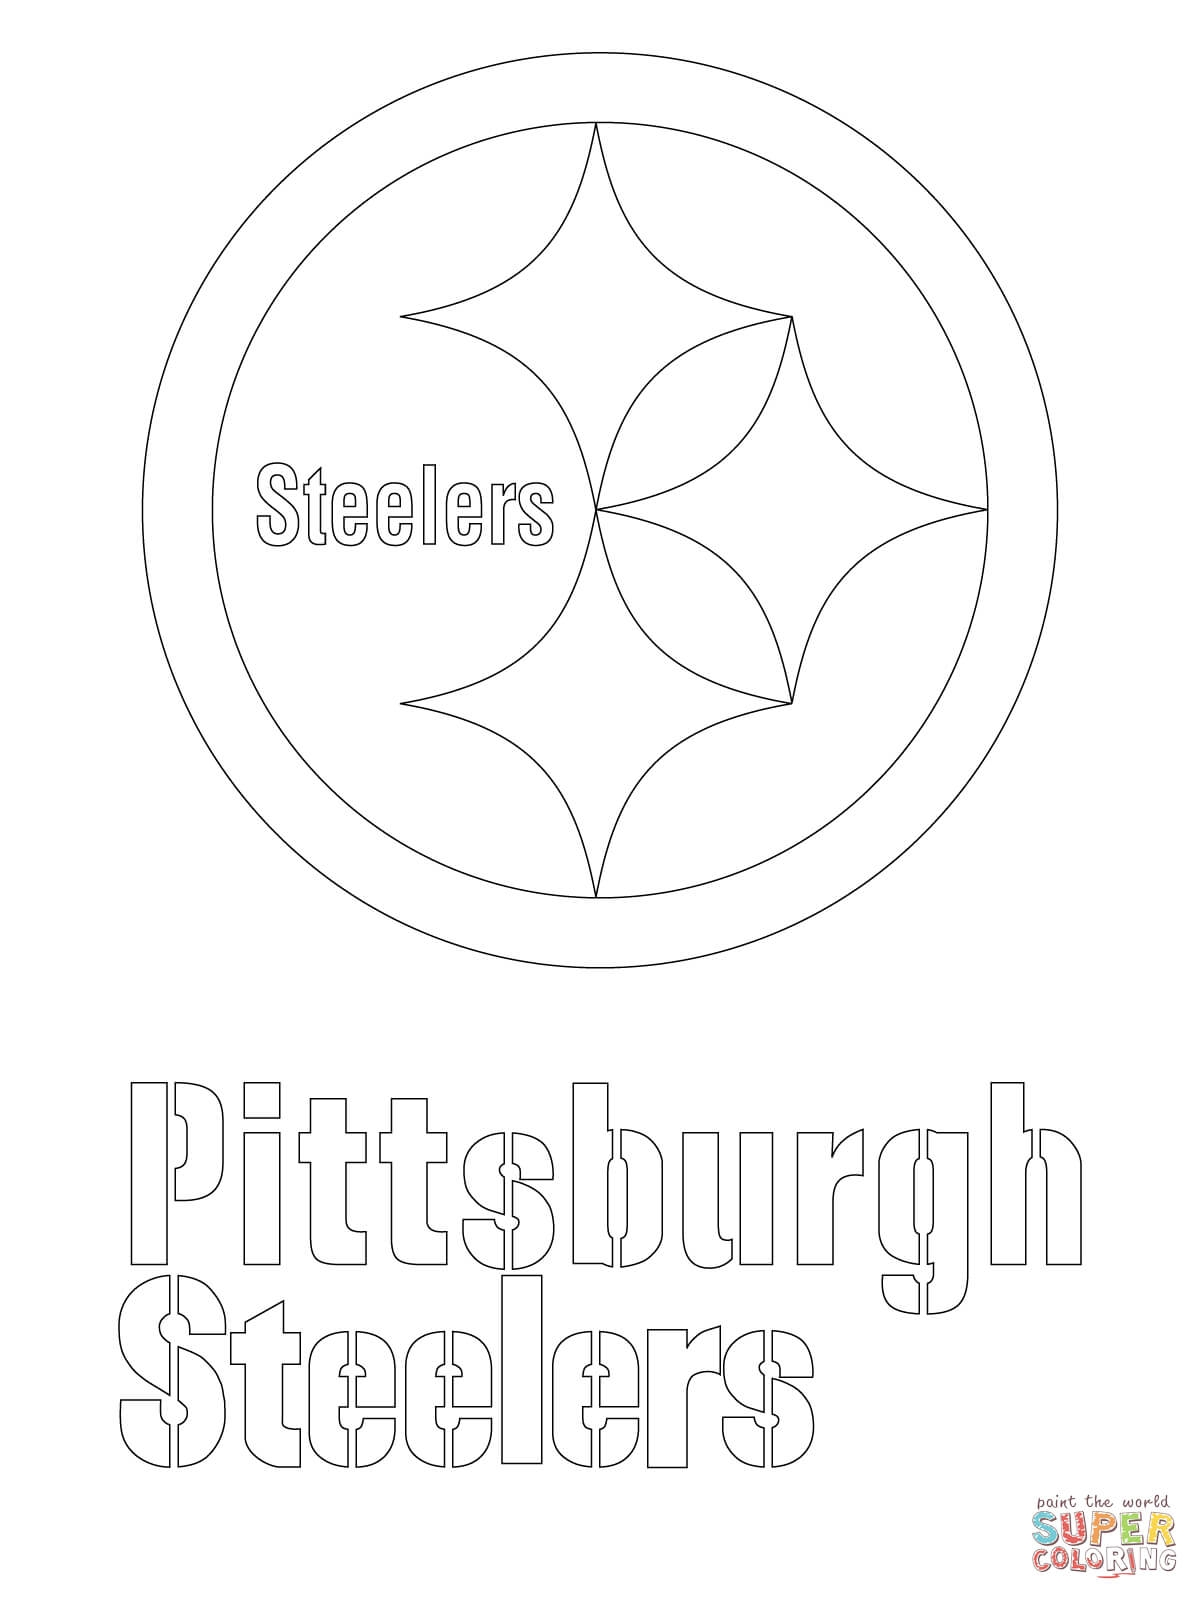 steelers coloring pages - pittsburgh steelers logo